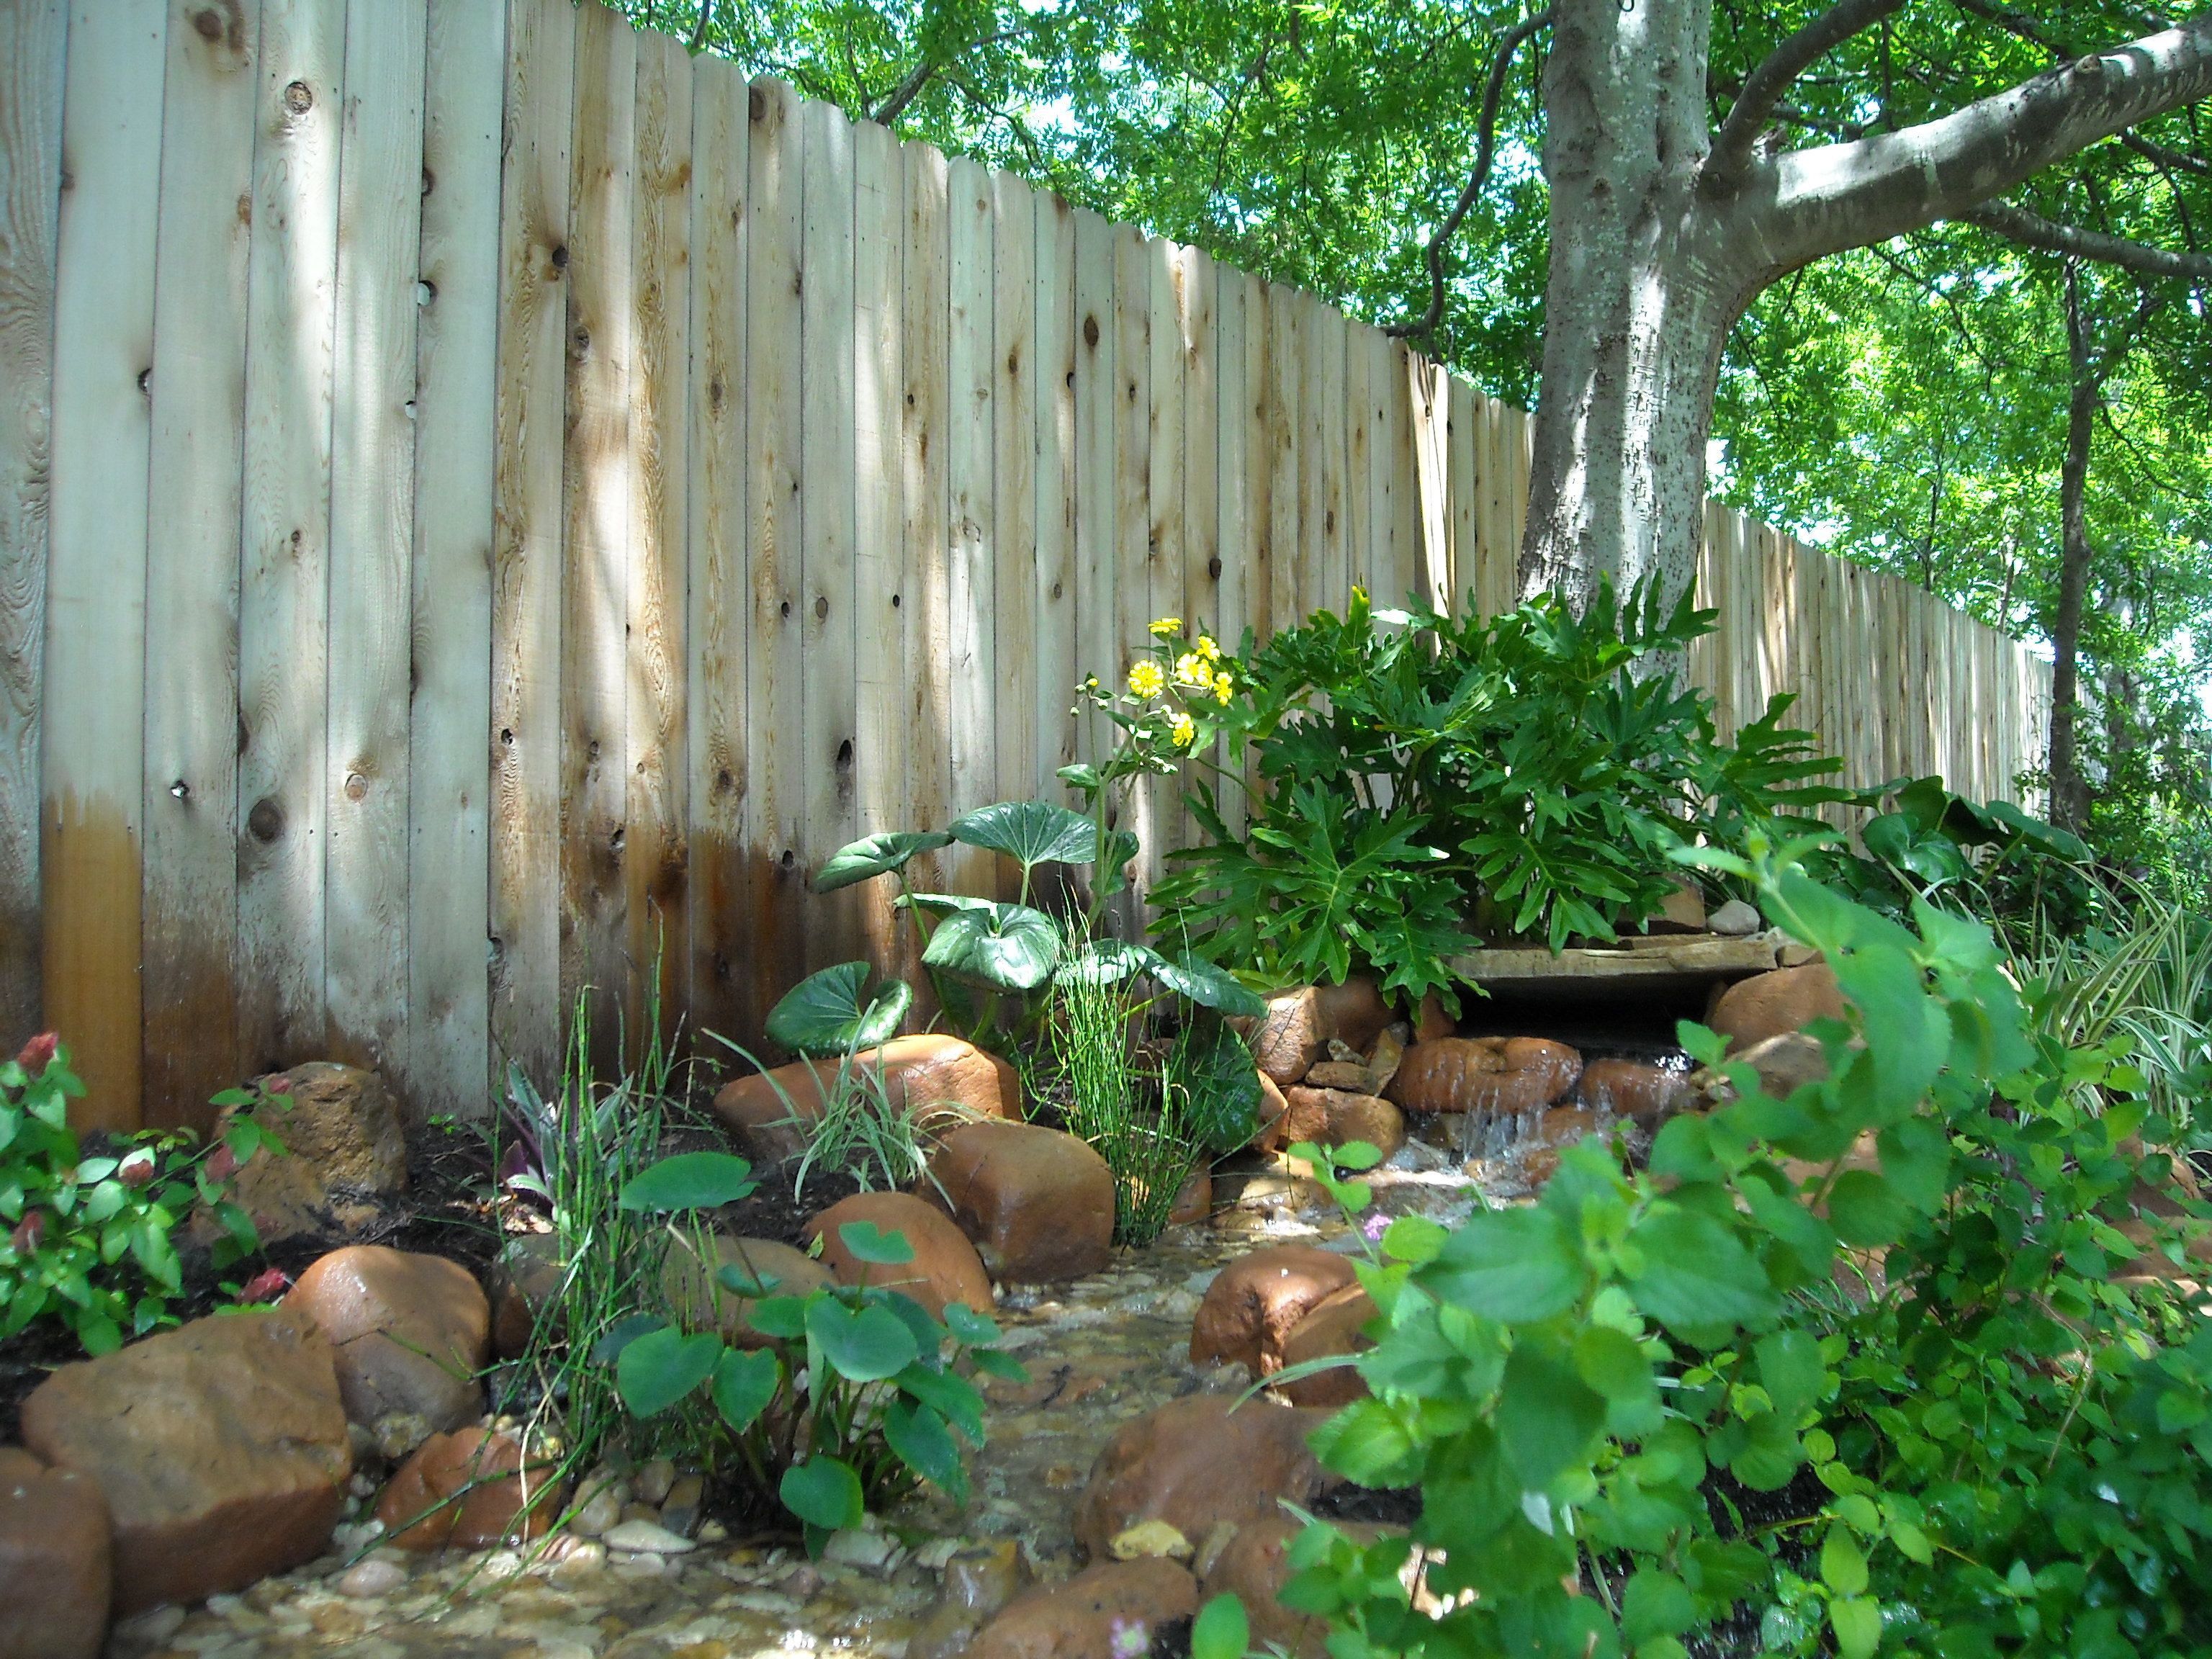 Backyard Landscape   Disappearing Stream With Beautiful Lush Plants In And  Around The Beginning Of The